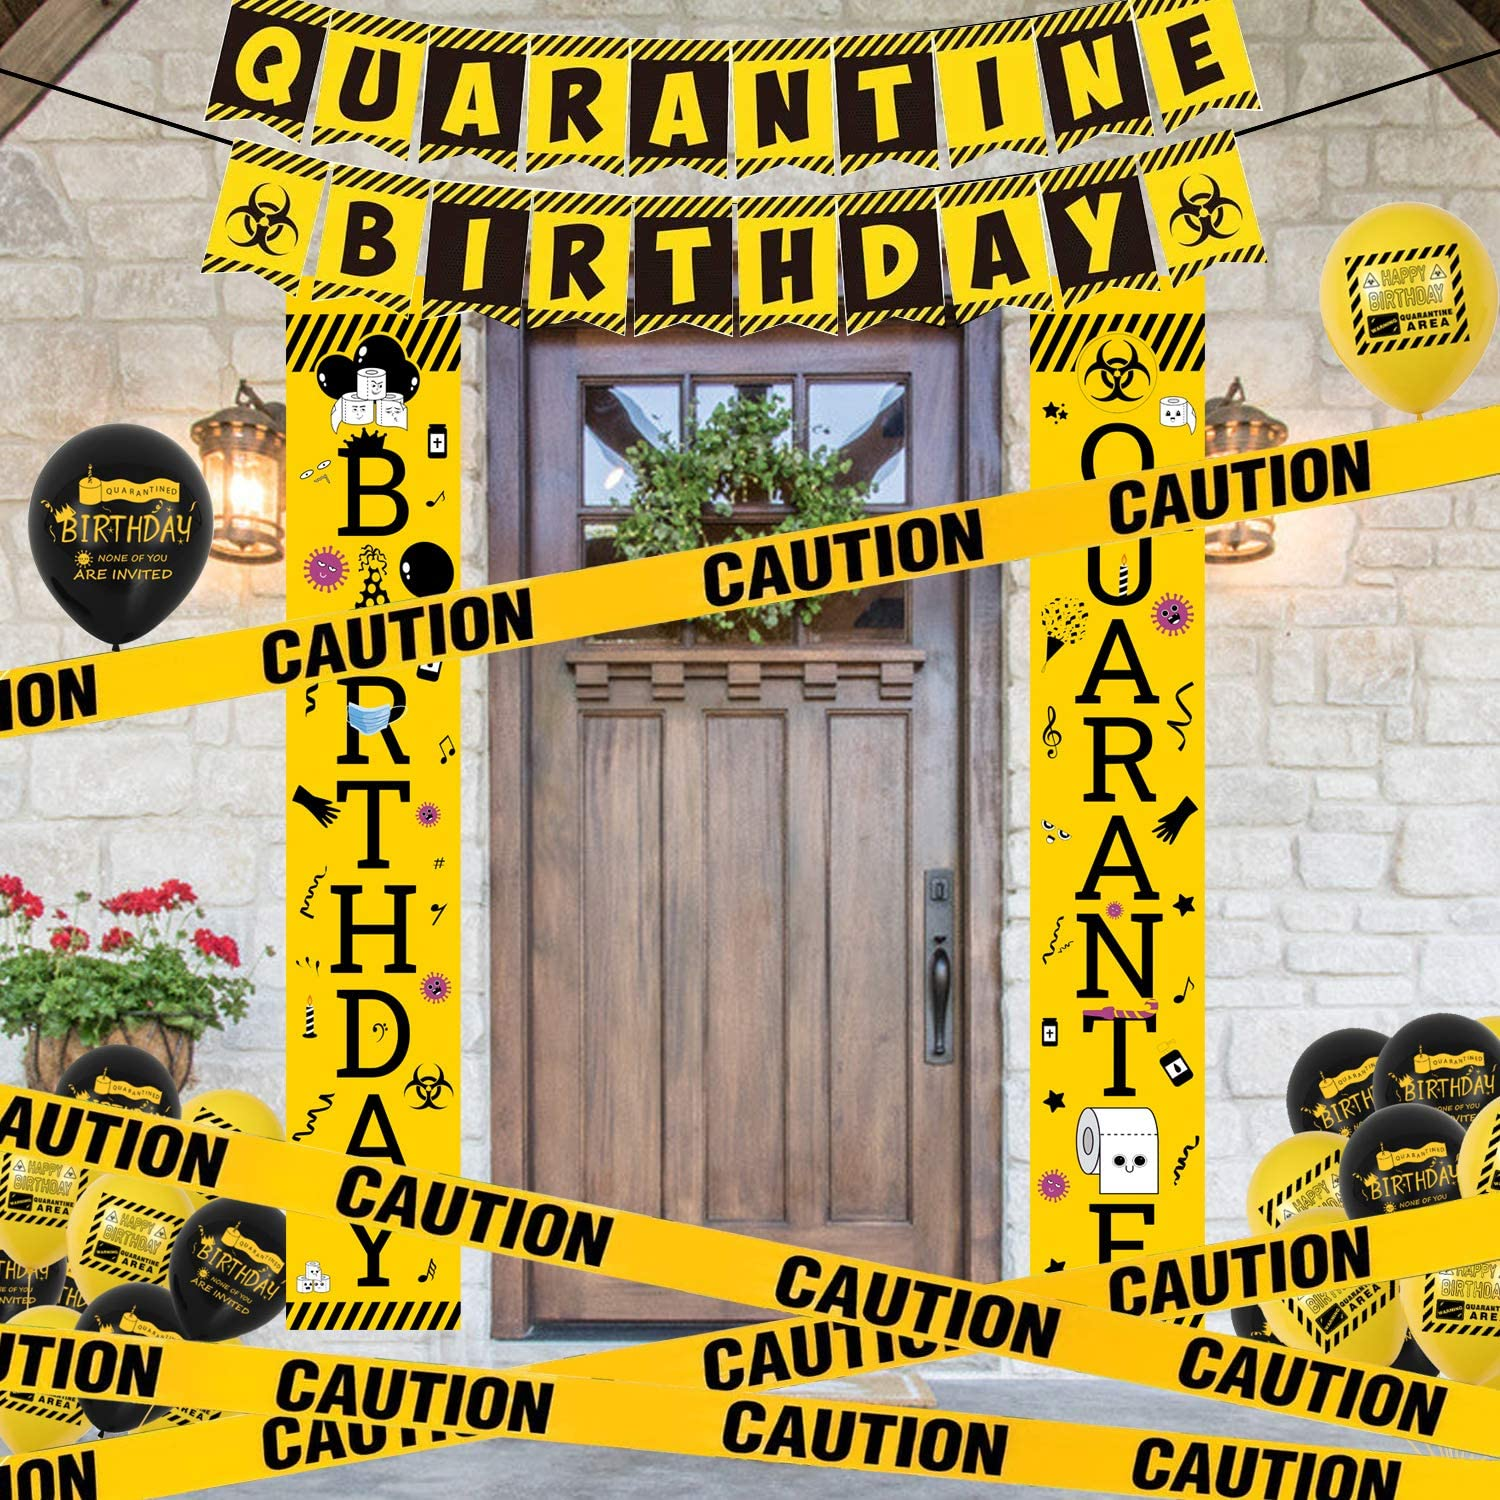 Quarantine Birthday Party Decorations Quarantine Theme Porch Signs,Welcome Banner,Balloons,Yellow Caution Tape,Hanging Swirls Social Distancing Home Party Supplies for kids Girls Baby Indoor Outdoor